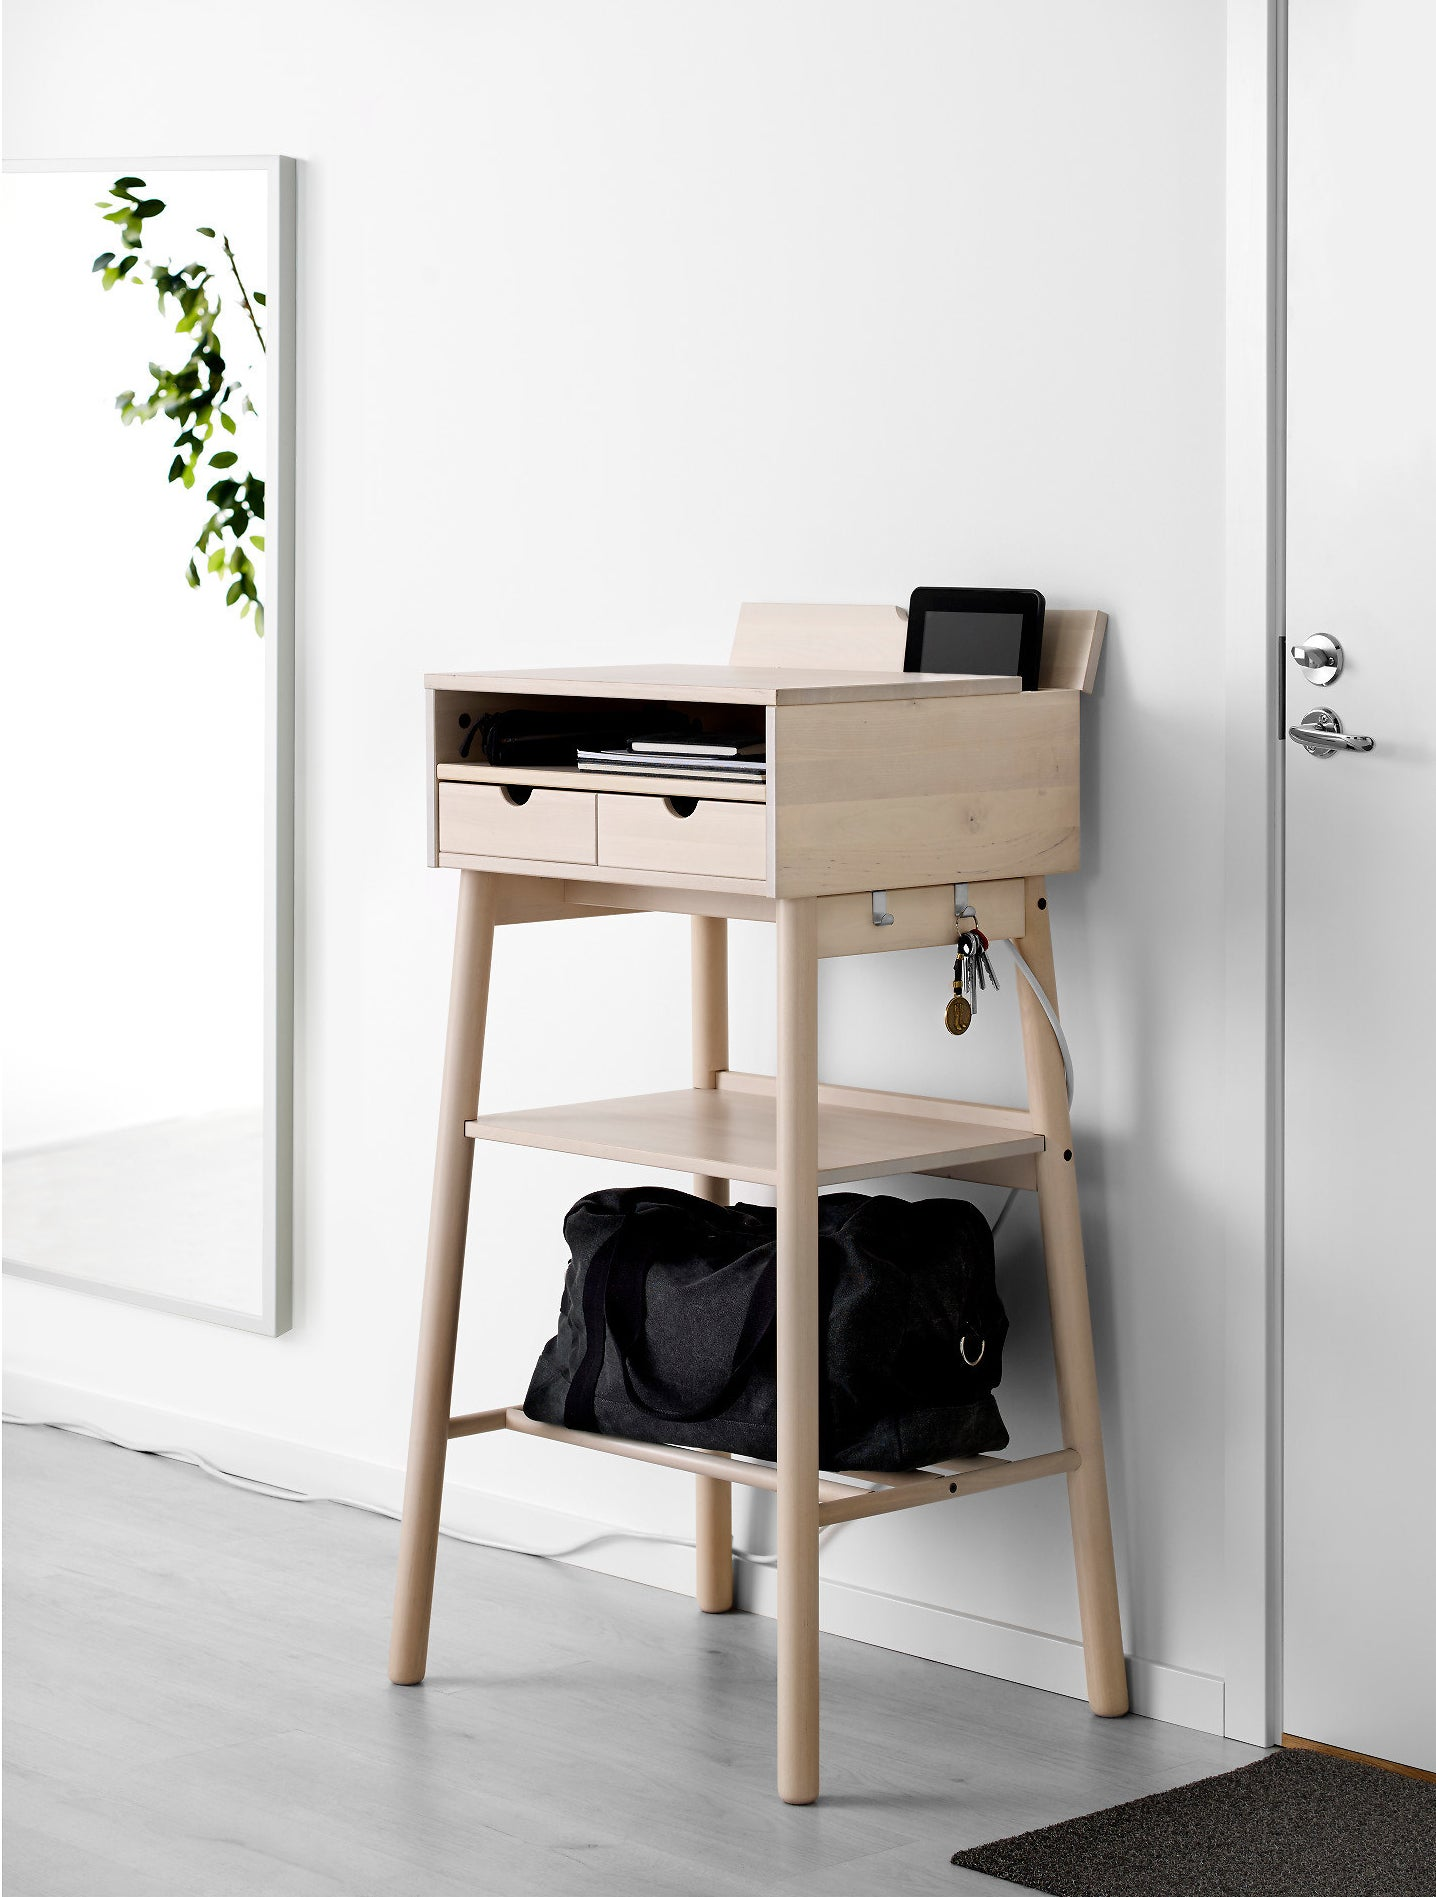 Wood standing desk with two shelves in the legs, a shelf in the desk and two small drawers and two hooks on the side